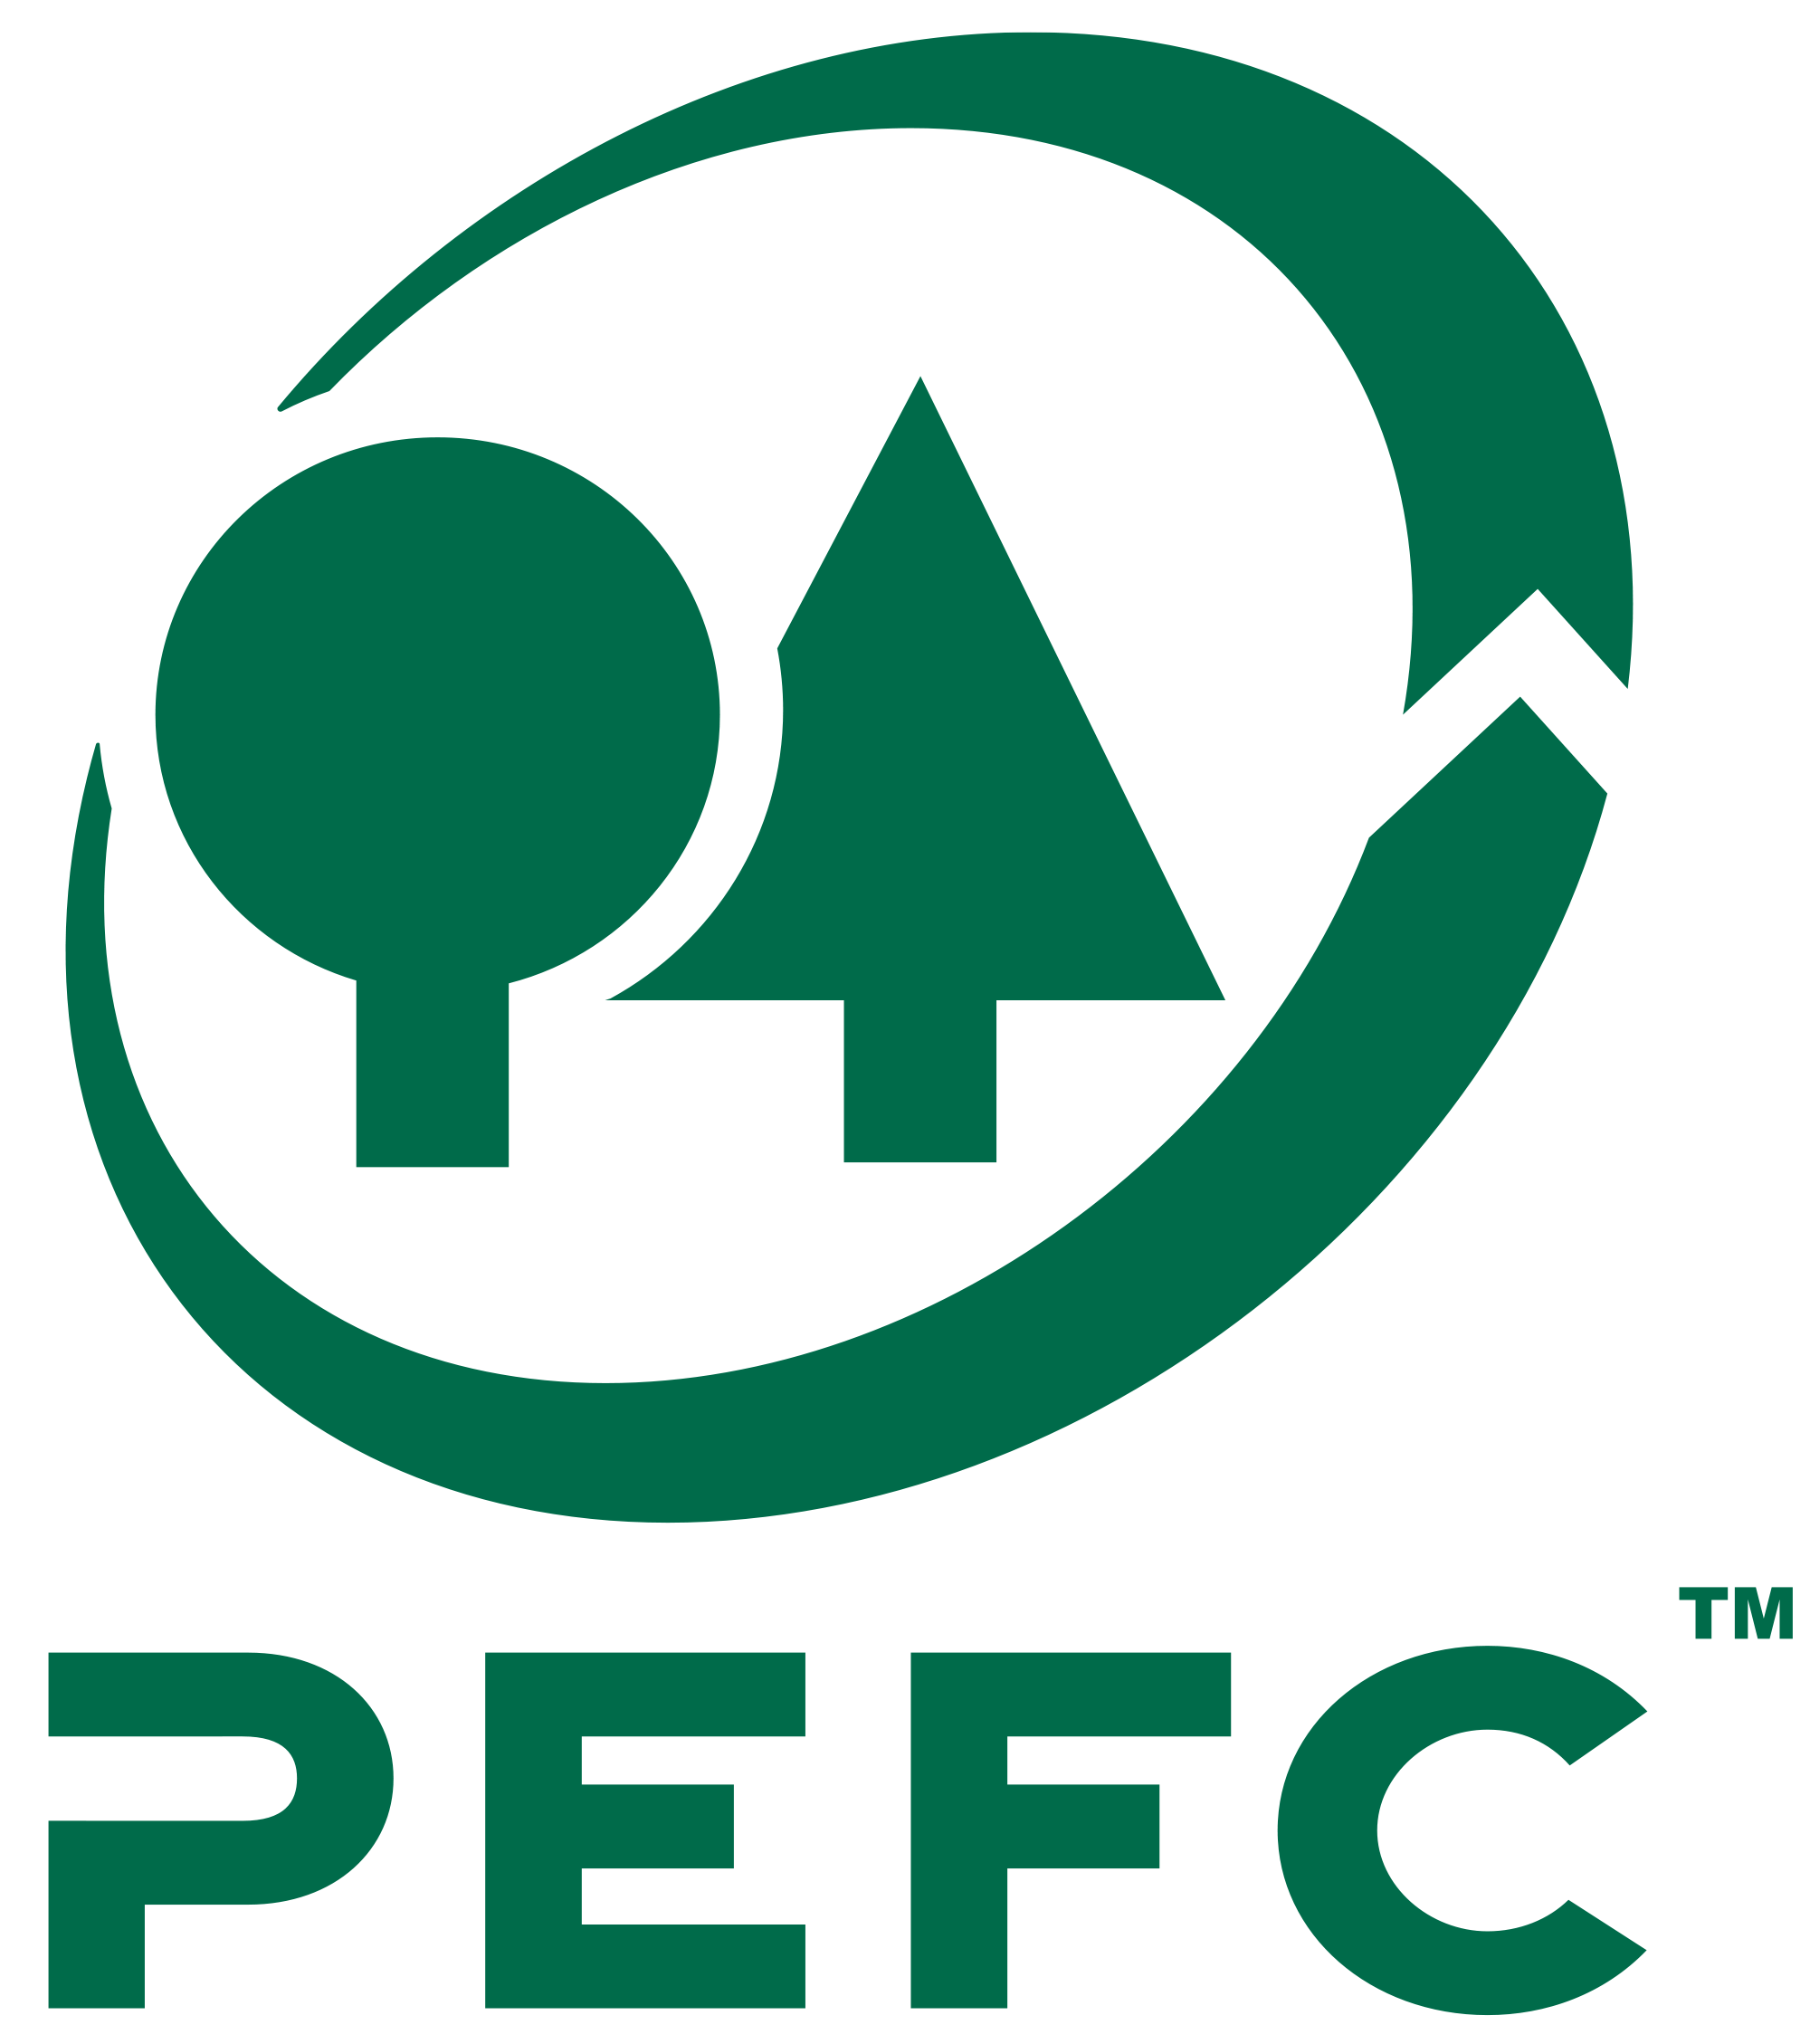 Programme for endorsement of Forest Certification